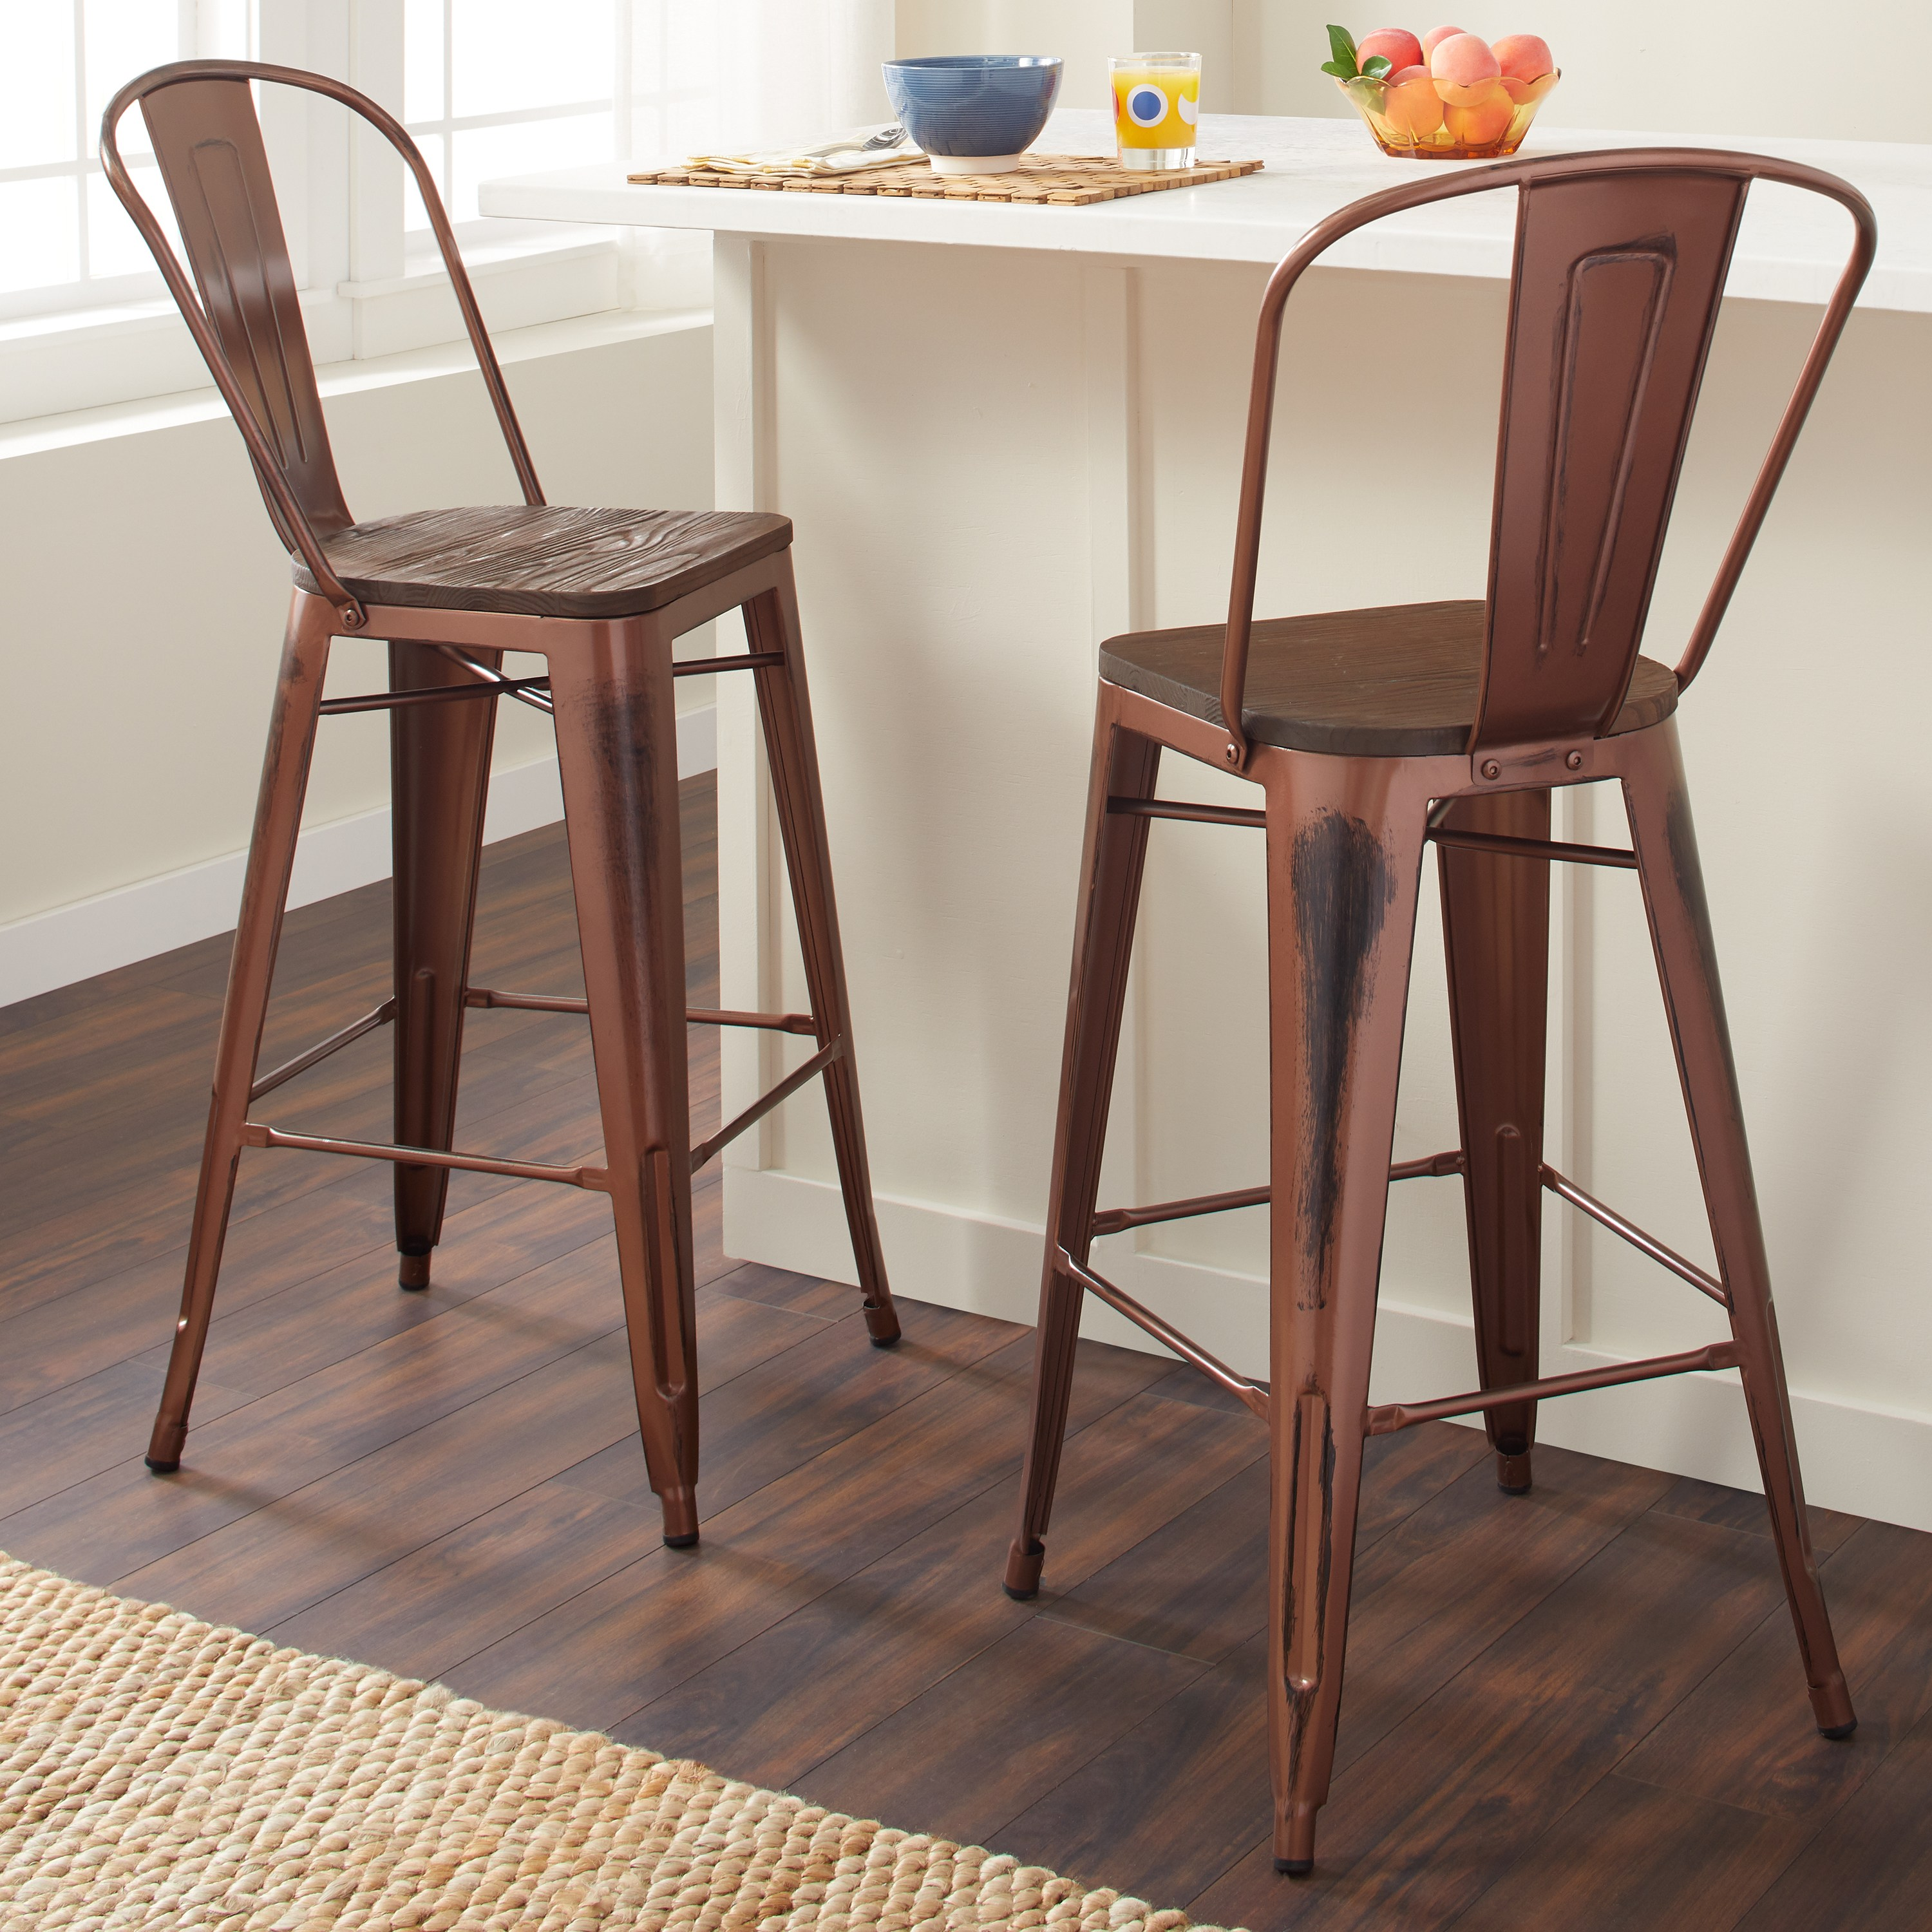 Tabourets Walmart Tabouret 30 Inch Wood Seat Brushed Copper Bistro Bar Stool Set Of 2